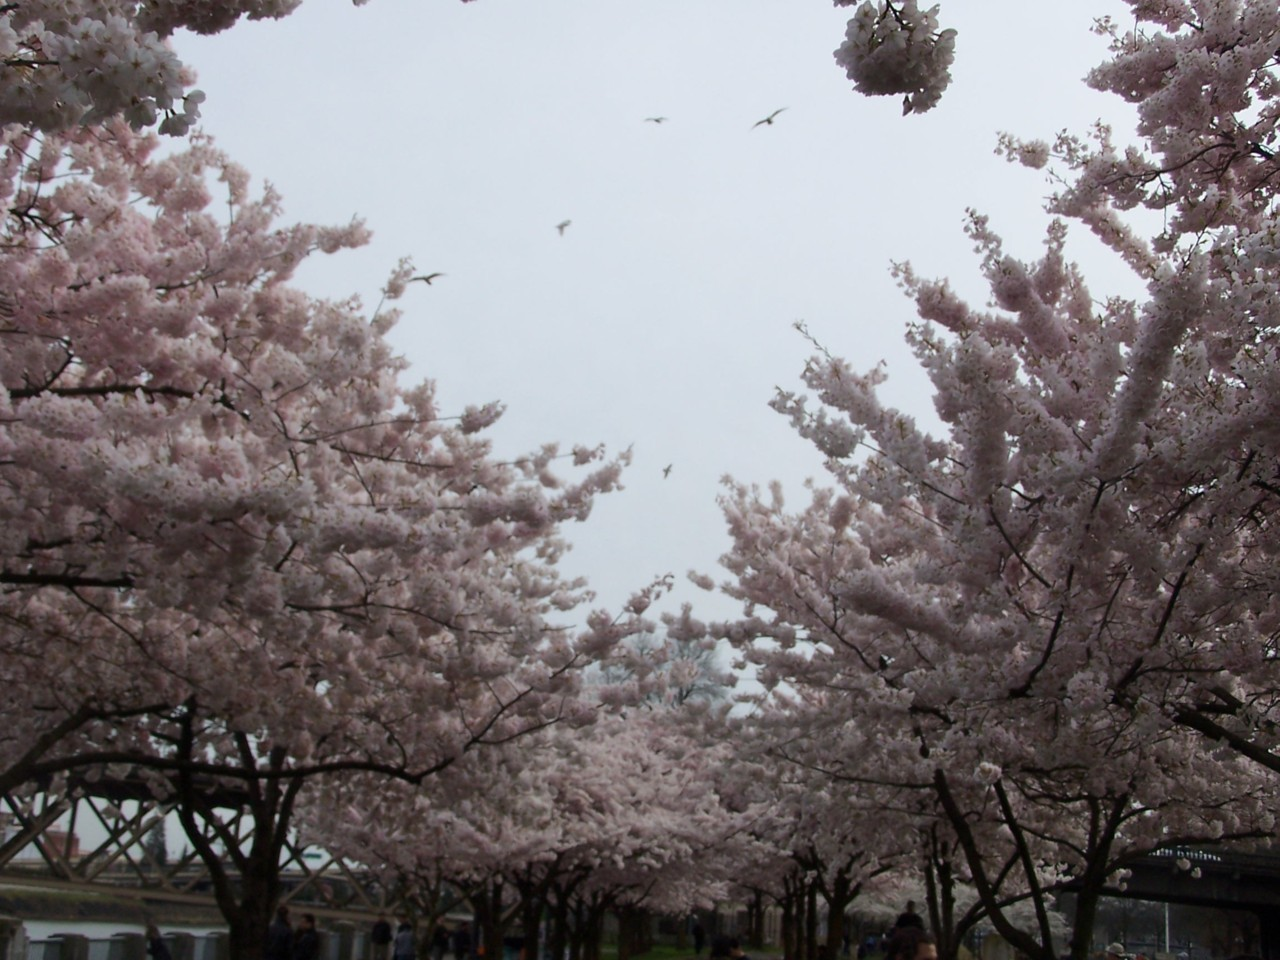 Cherry blossoms and seagulls in North Waterfront Park.